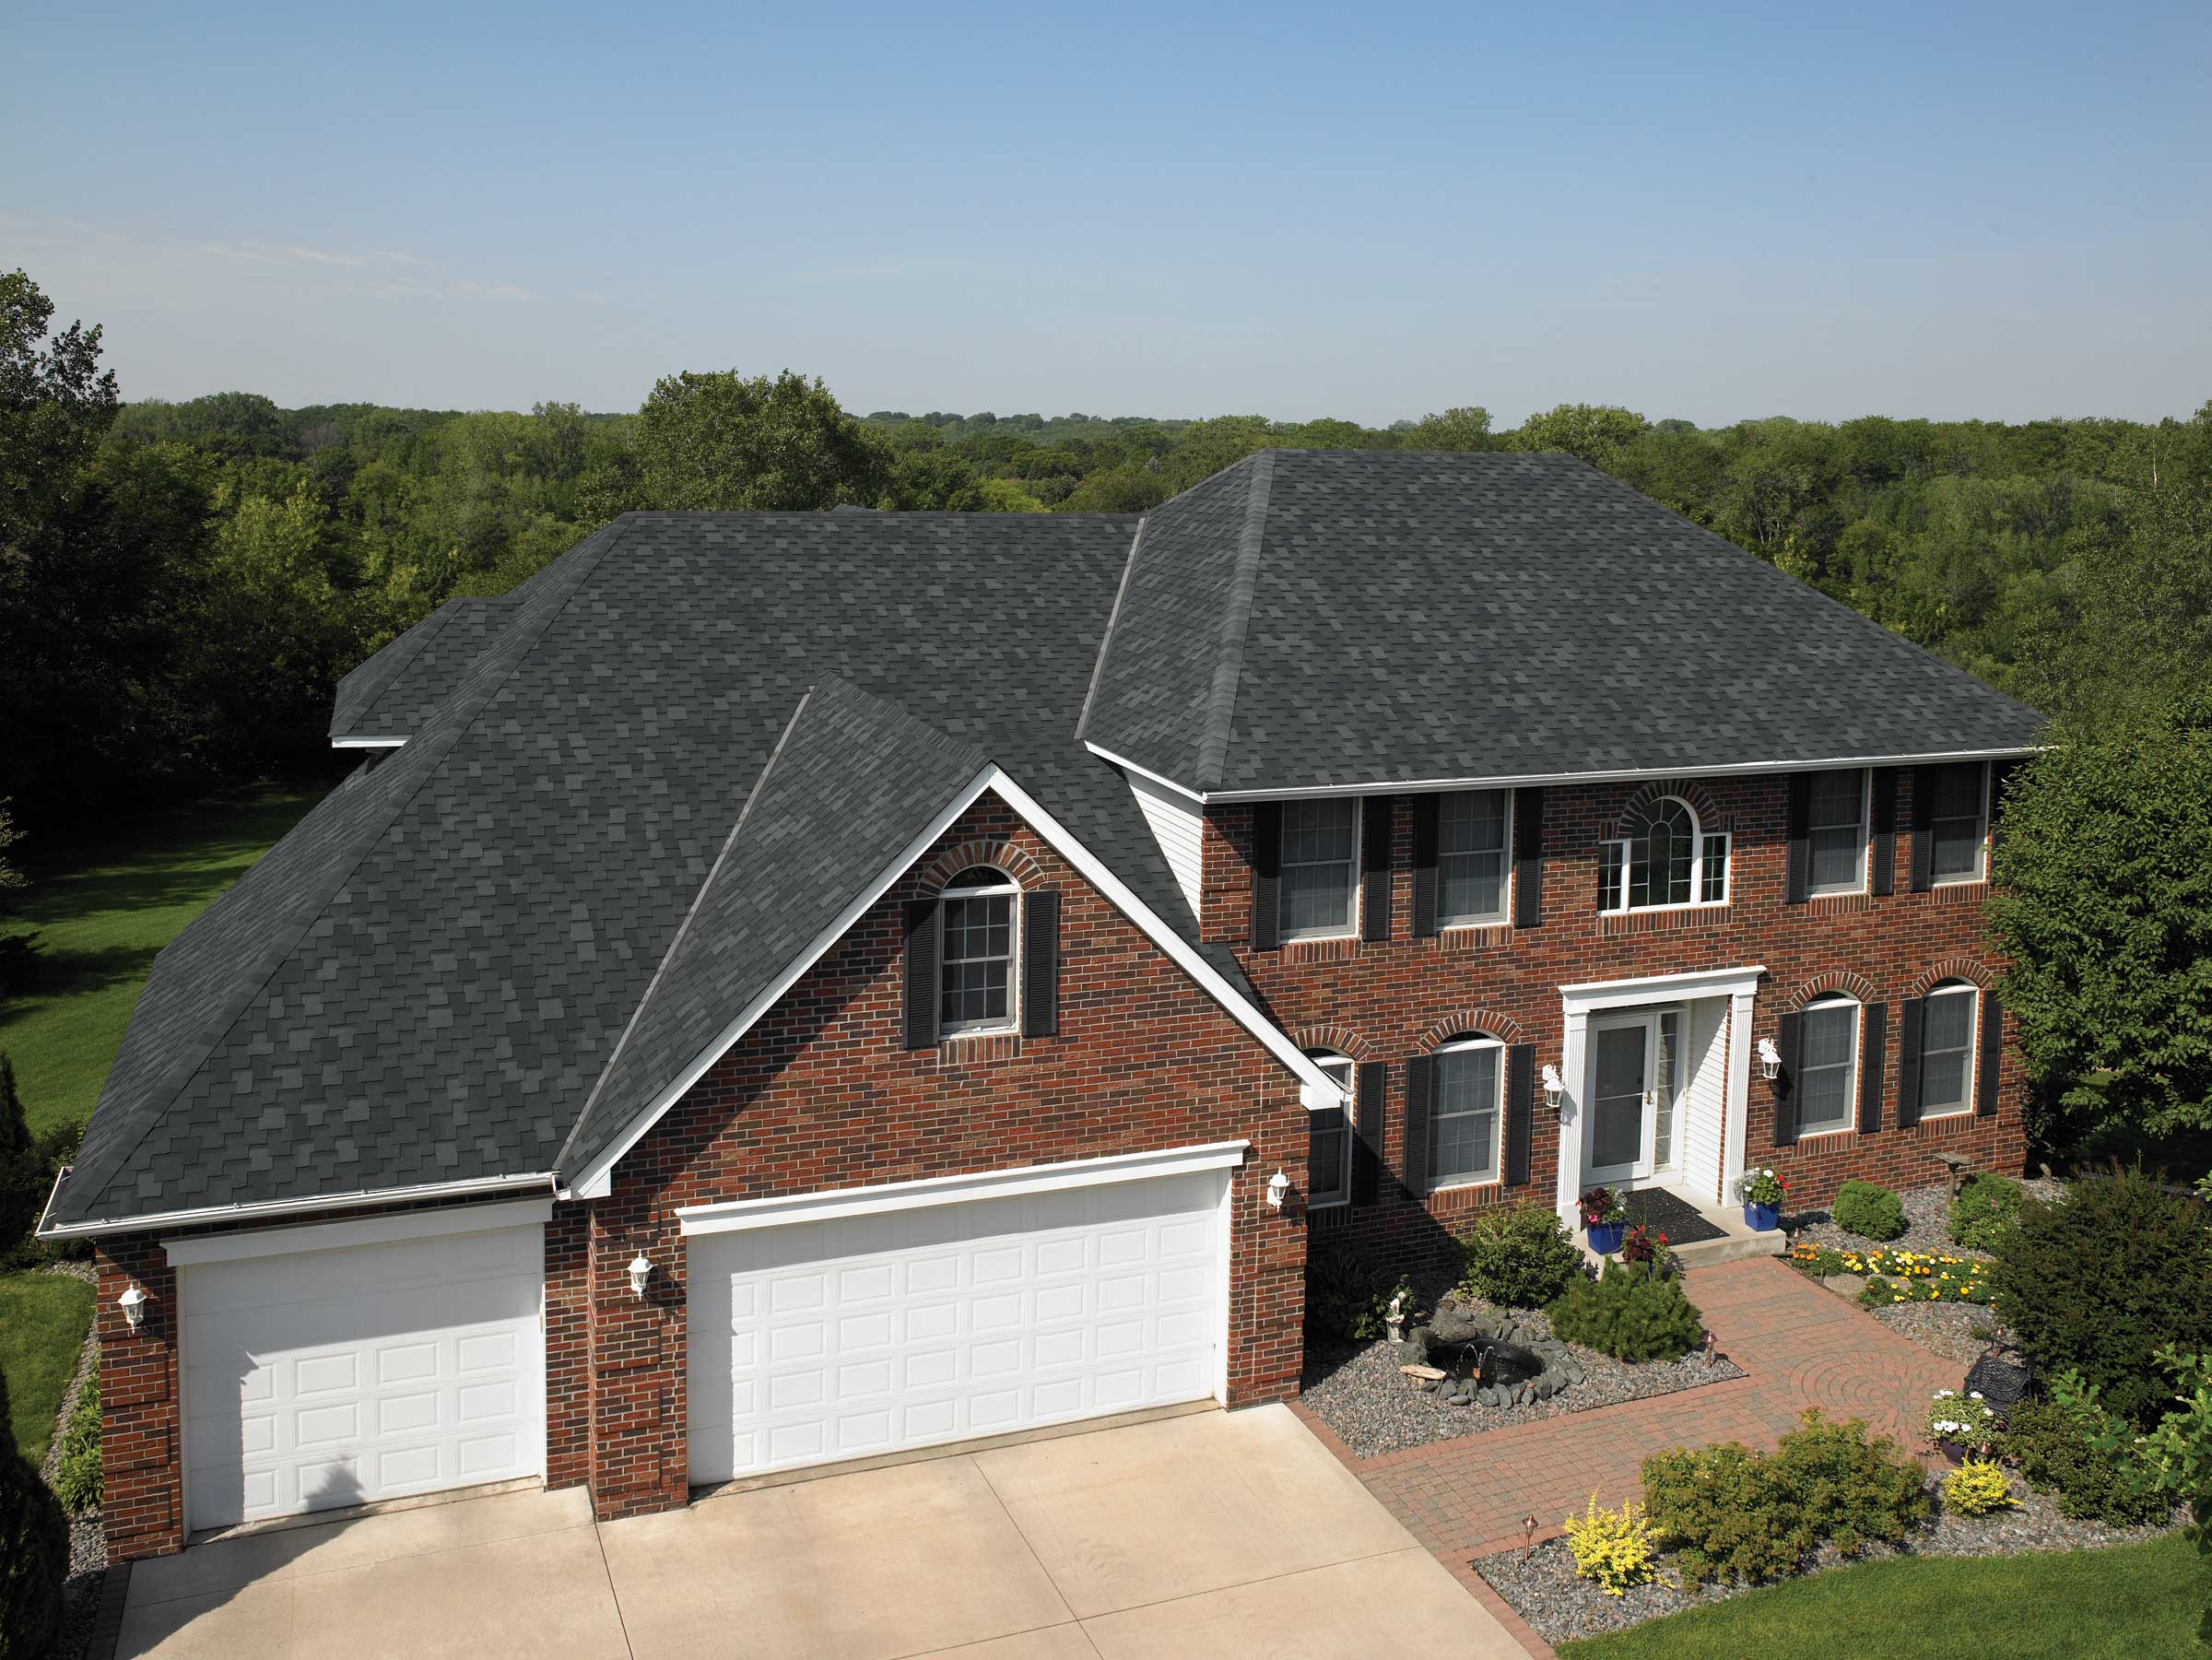 shingles-roofing-material